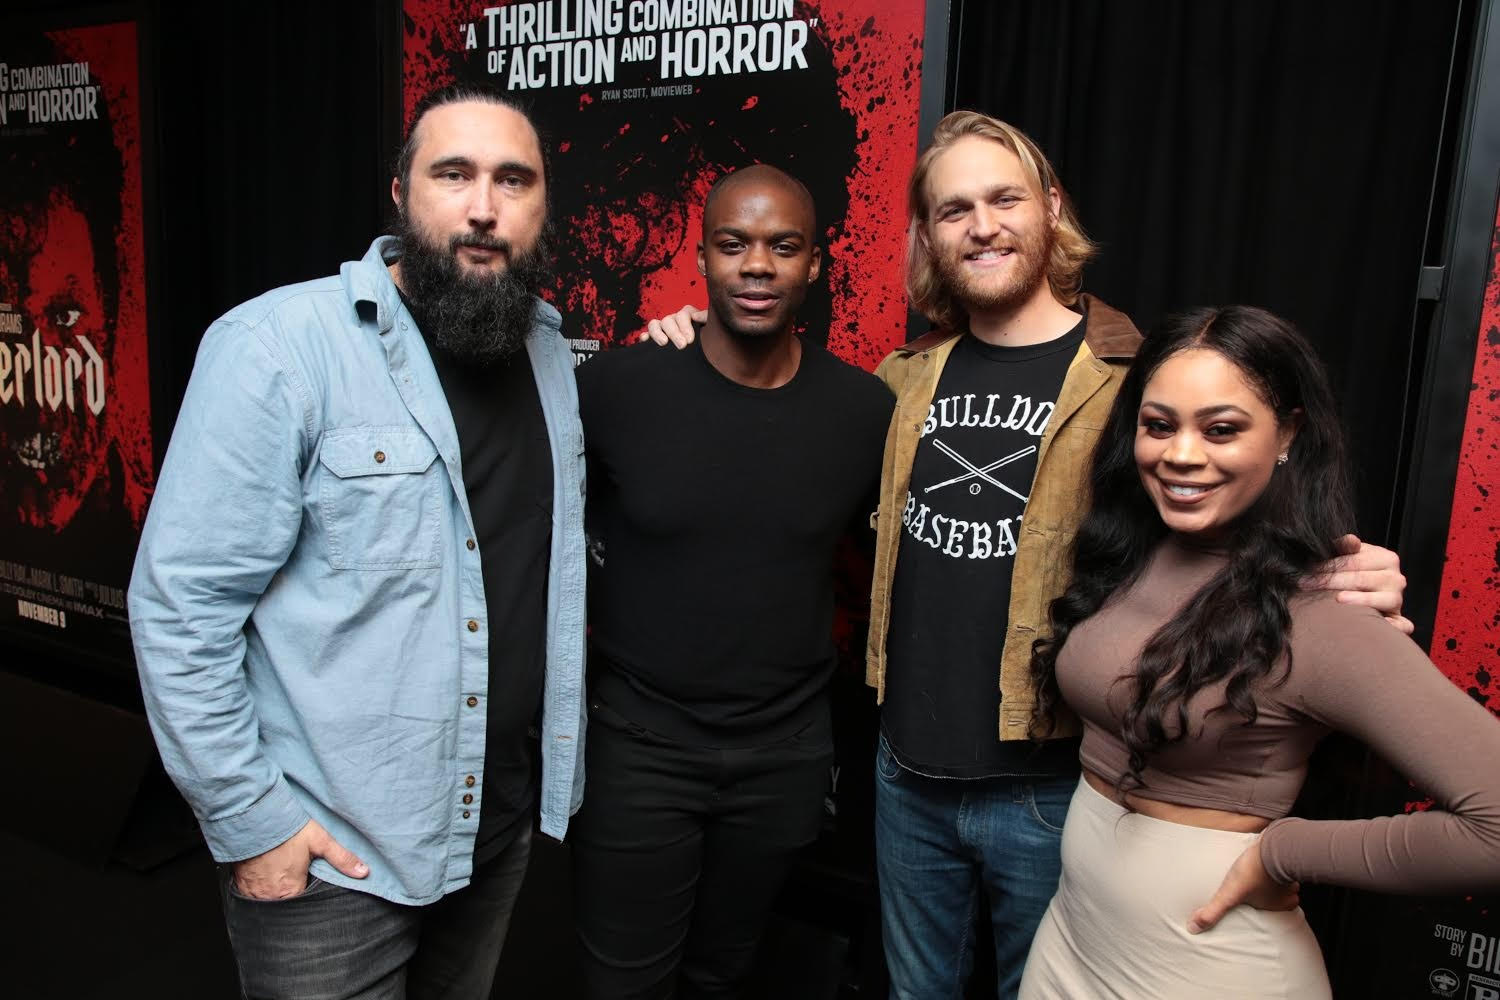 """Overlord"" Director, Julius Avery with cast members Jovan Adepo, Wyatt Russell and EUR associate Angel Saunders."